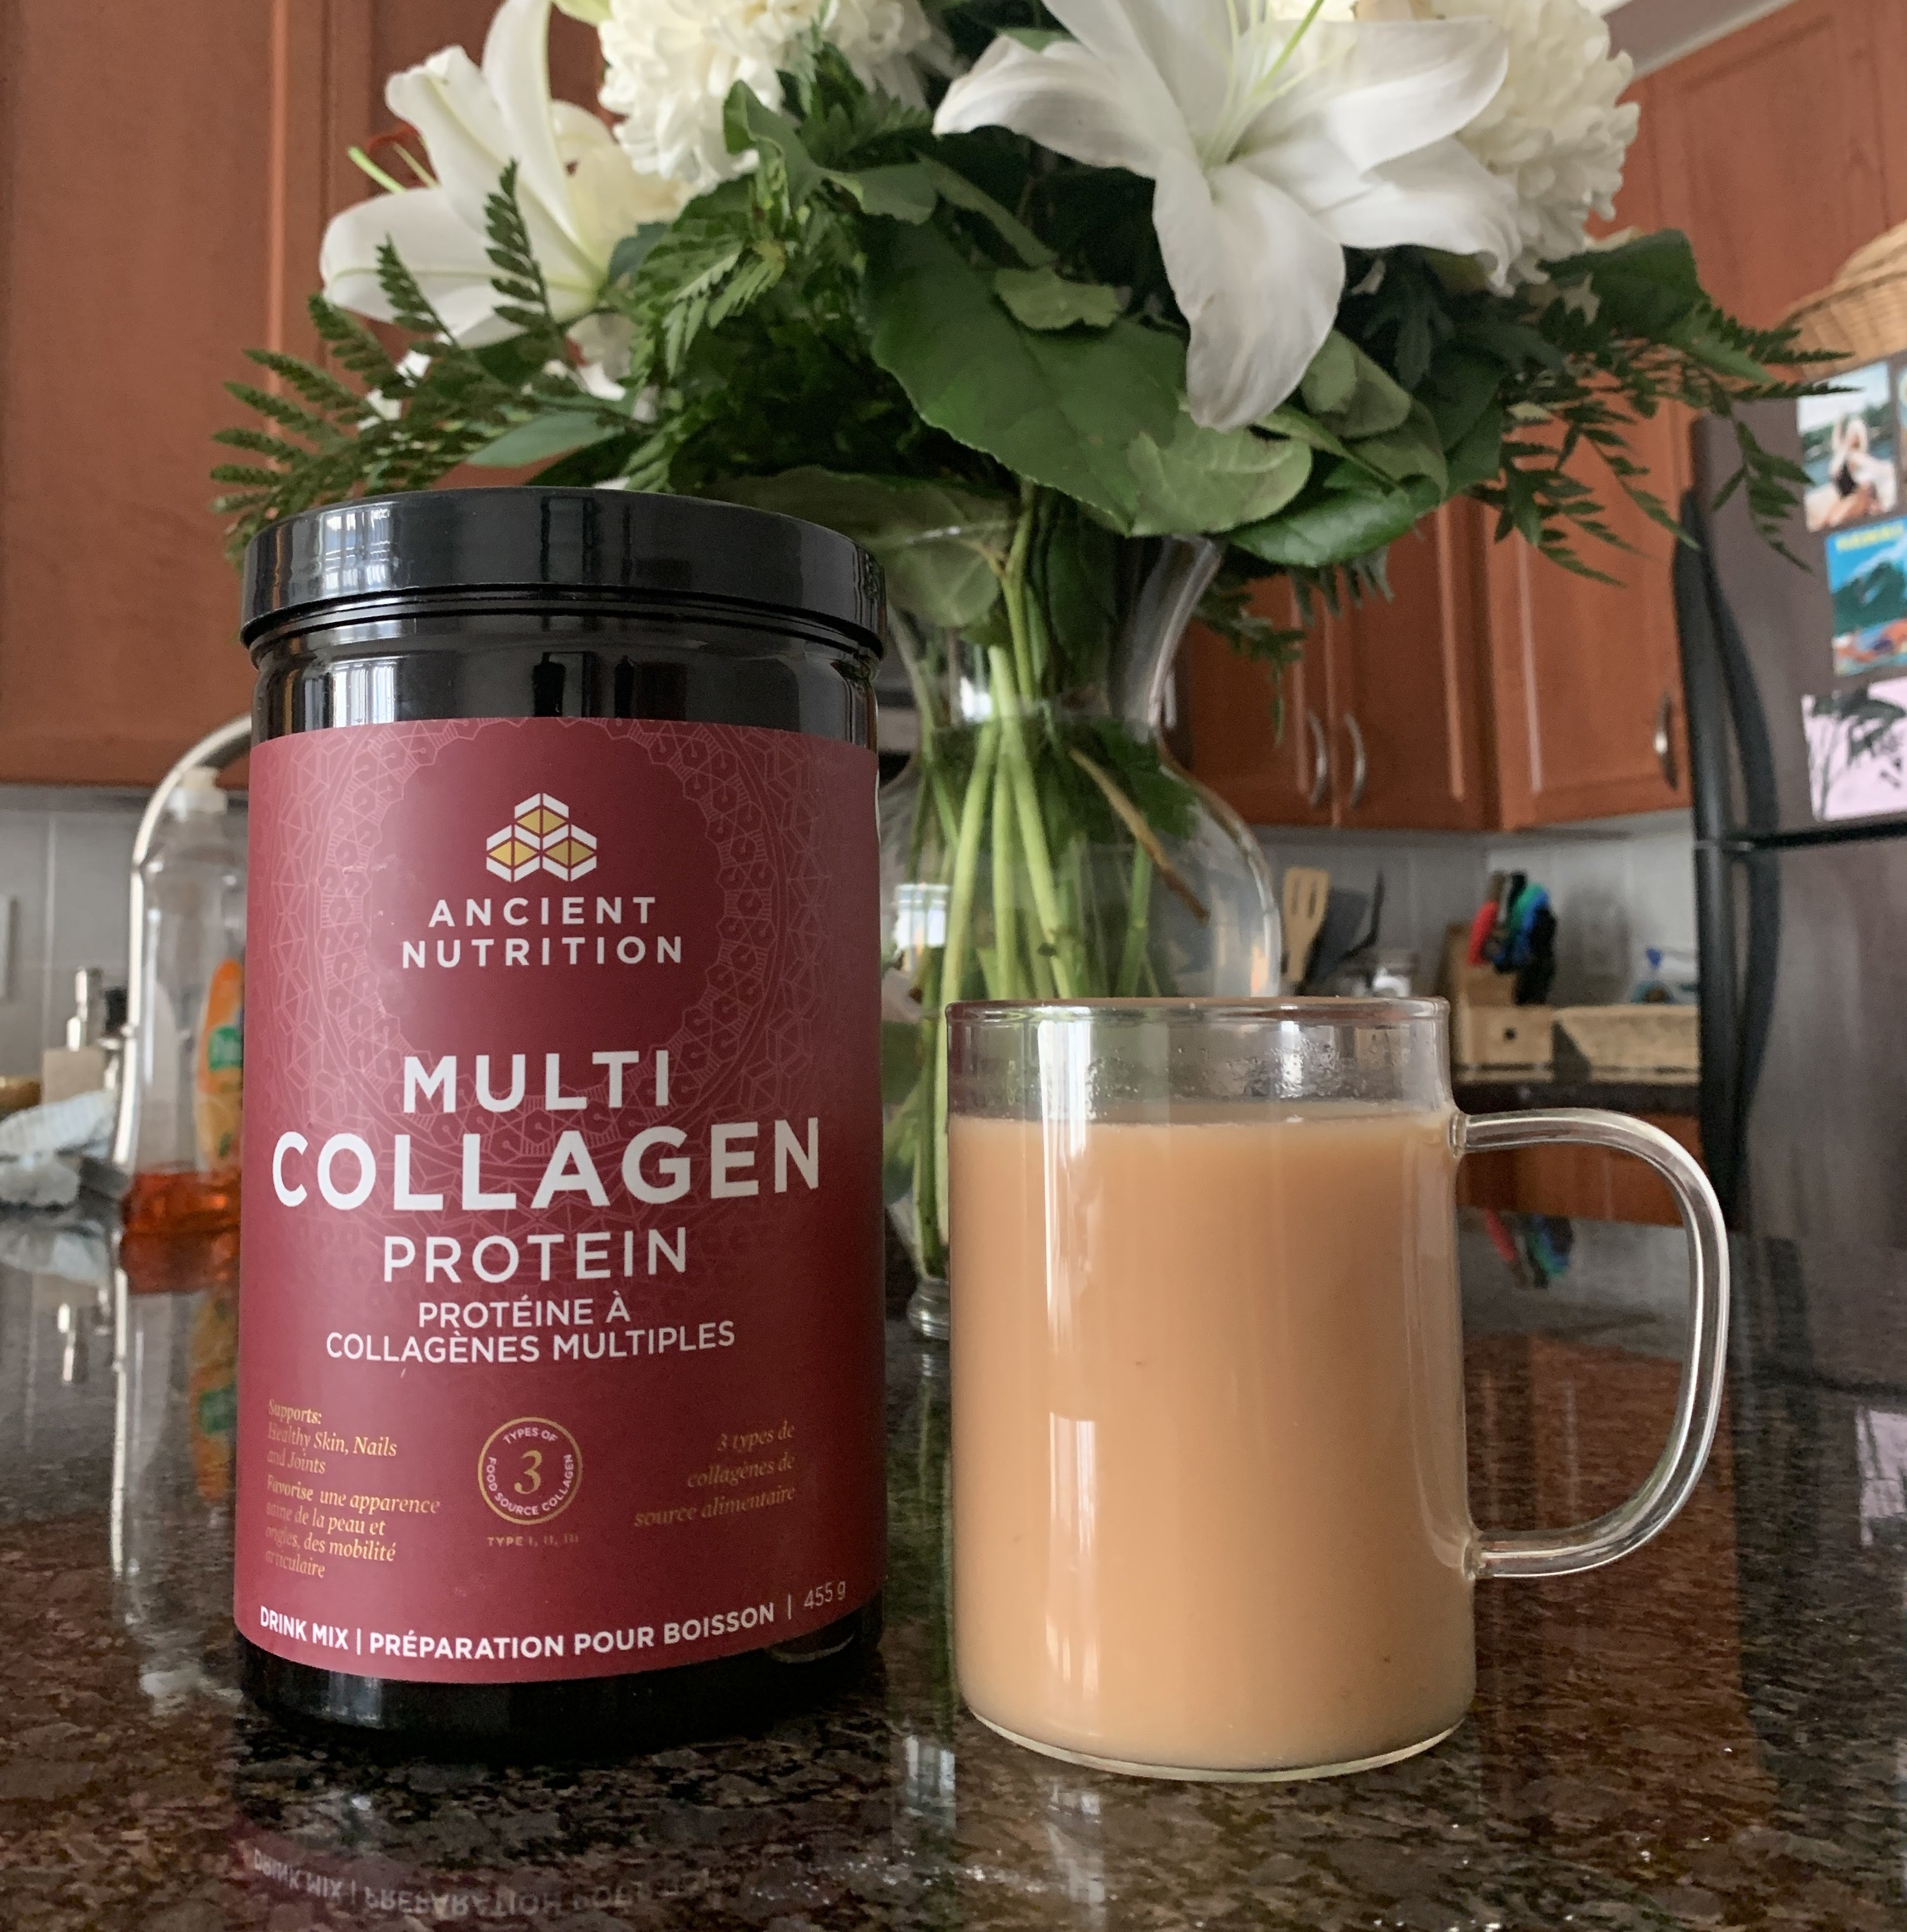 A container of Multi Collagen Protein drink mix next to a mug of the product mixed with water